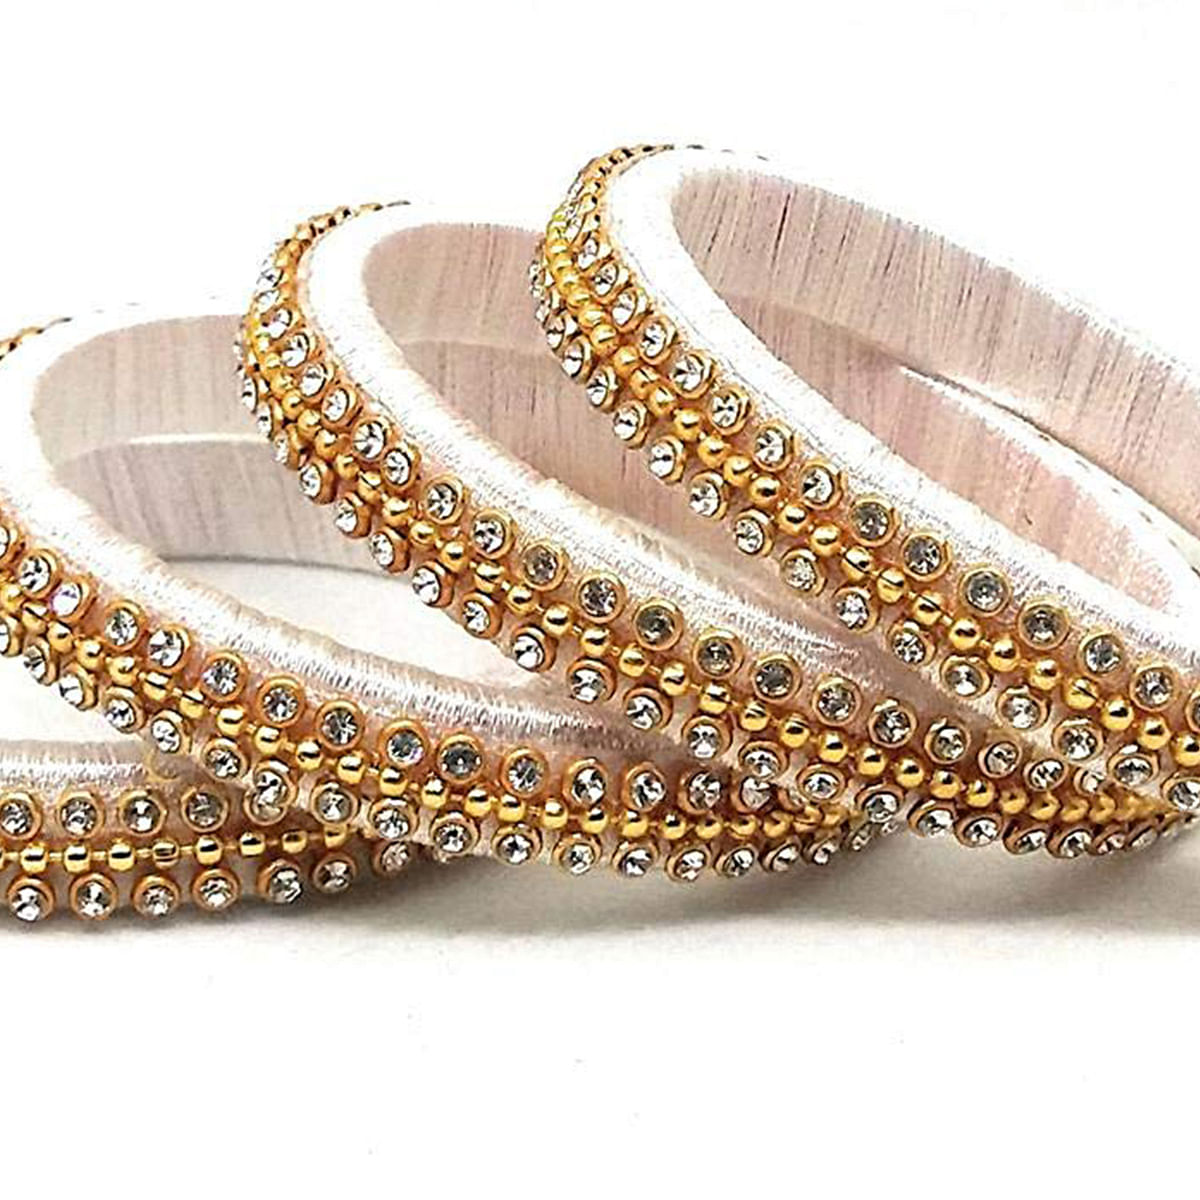 Delightful White Colored Silk Tread & Stone Work Bangles - Set Of 4